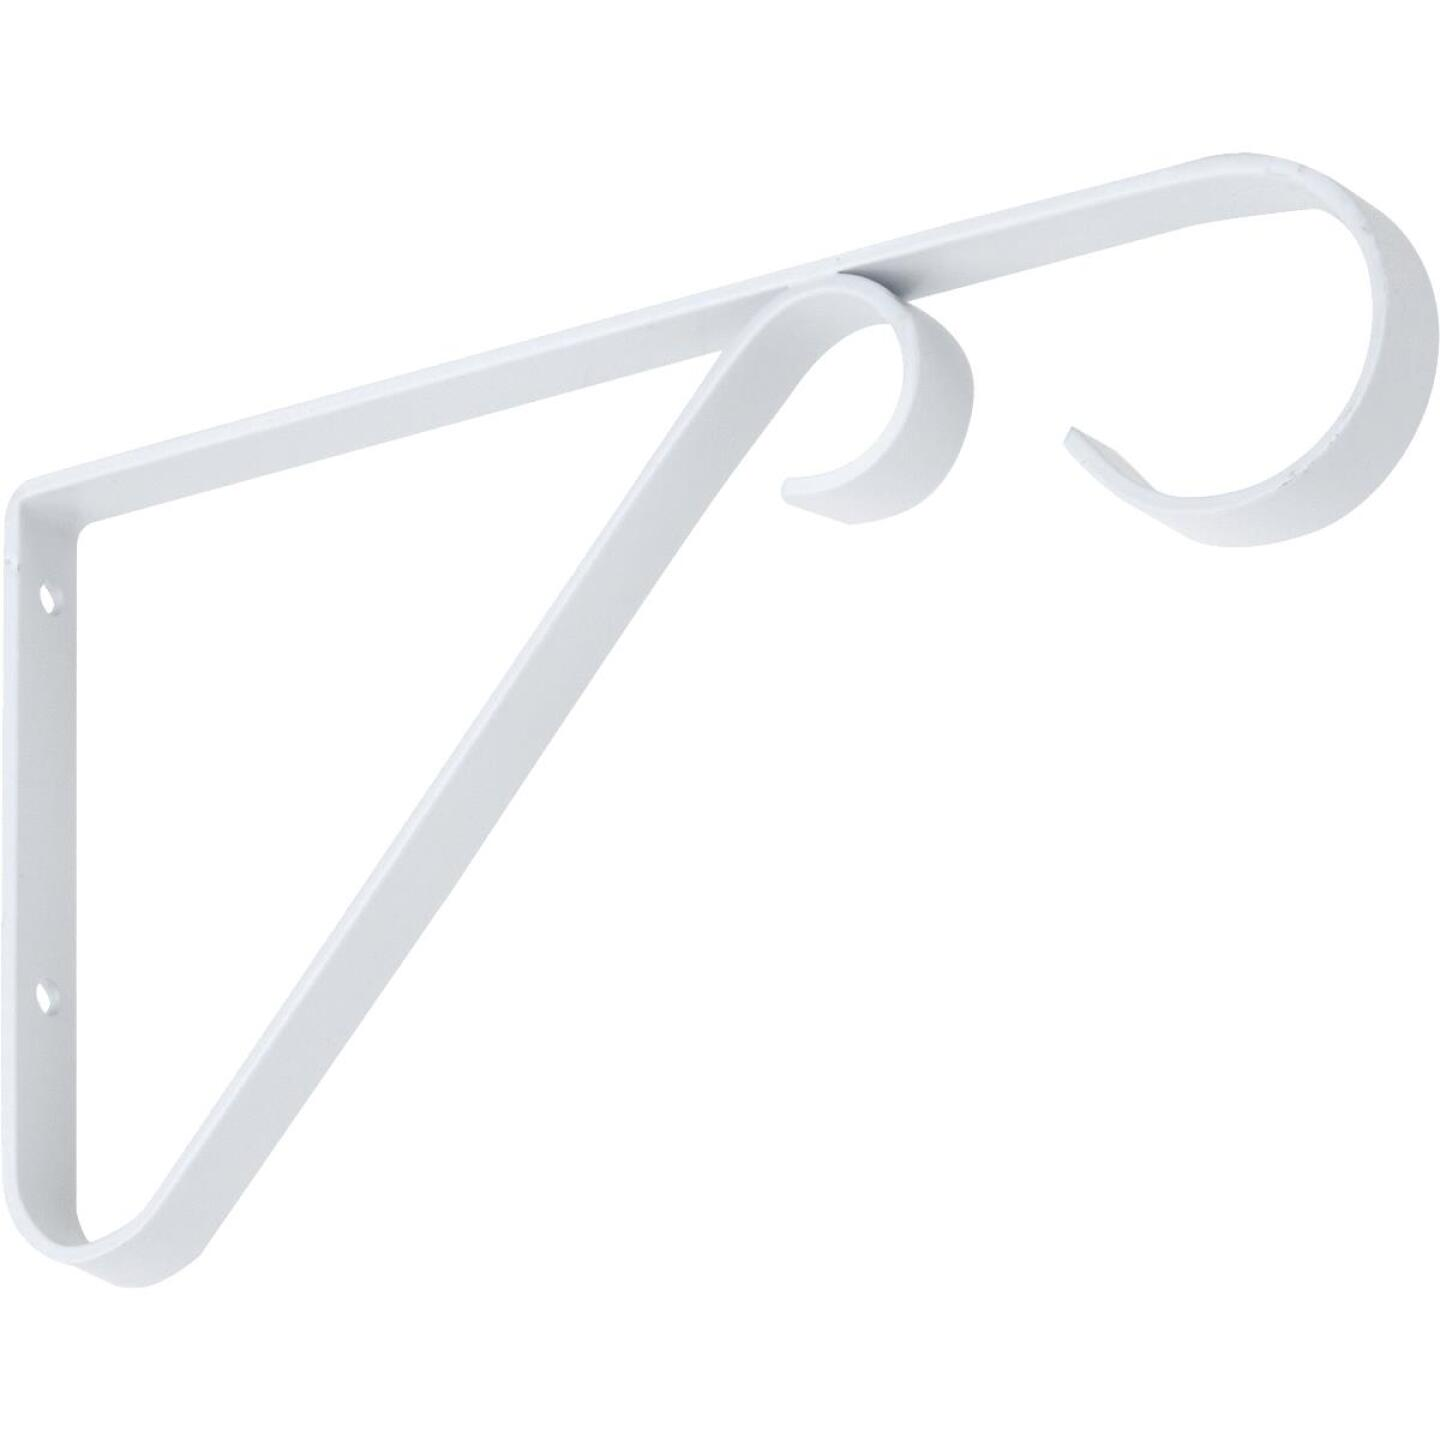 National 6 In. White Steel Hanging Plant Bracket Image 1